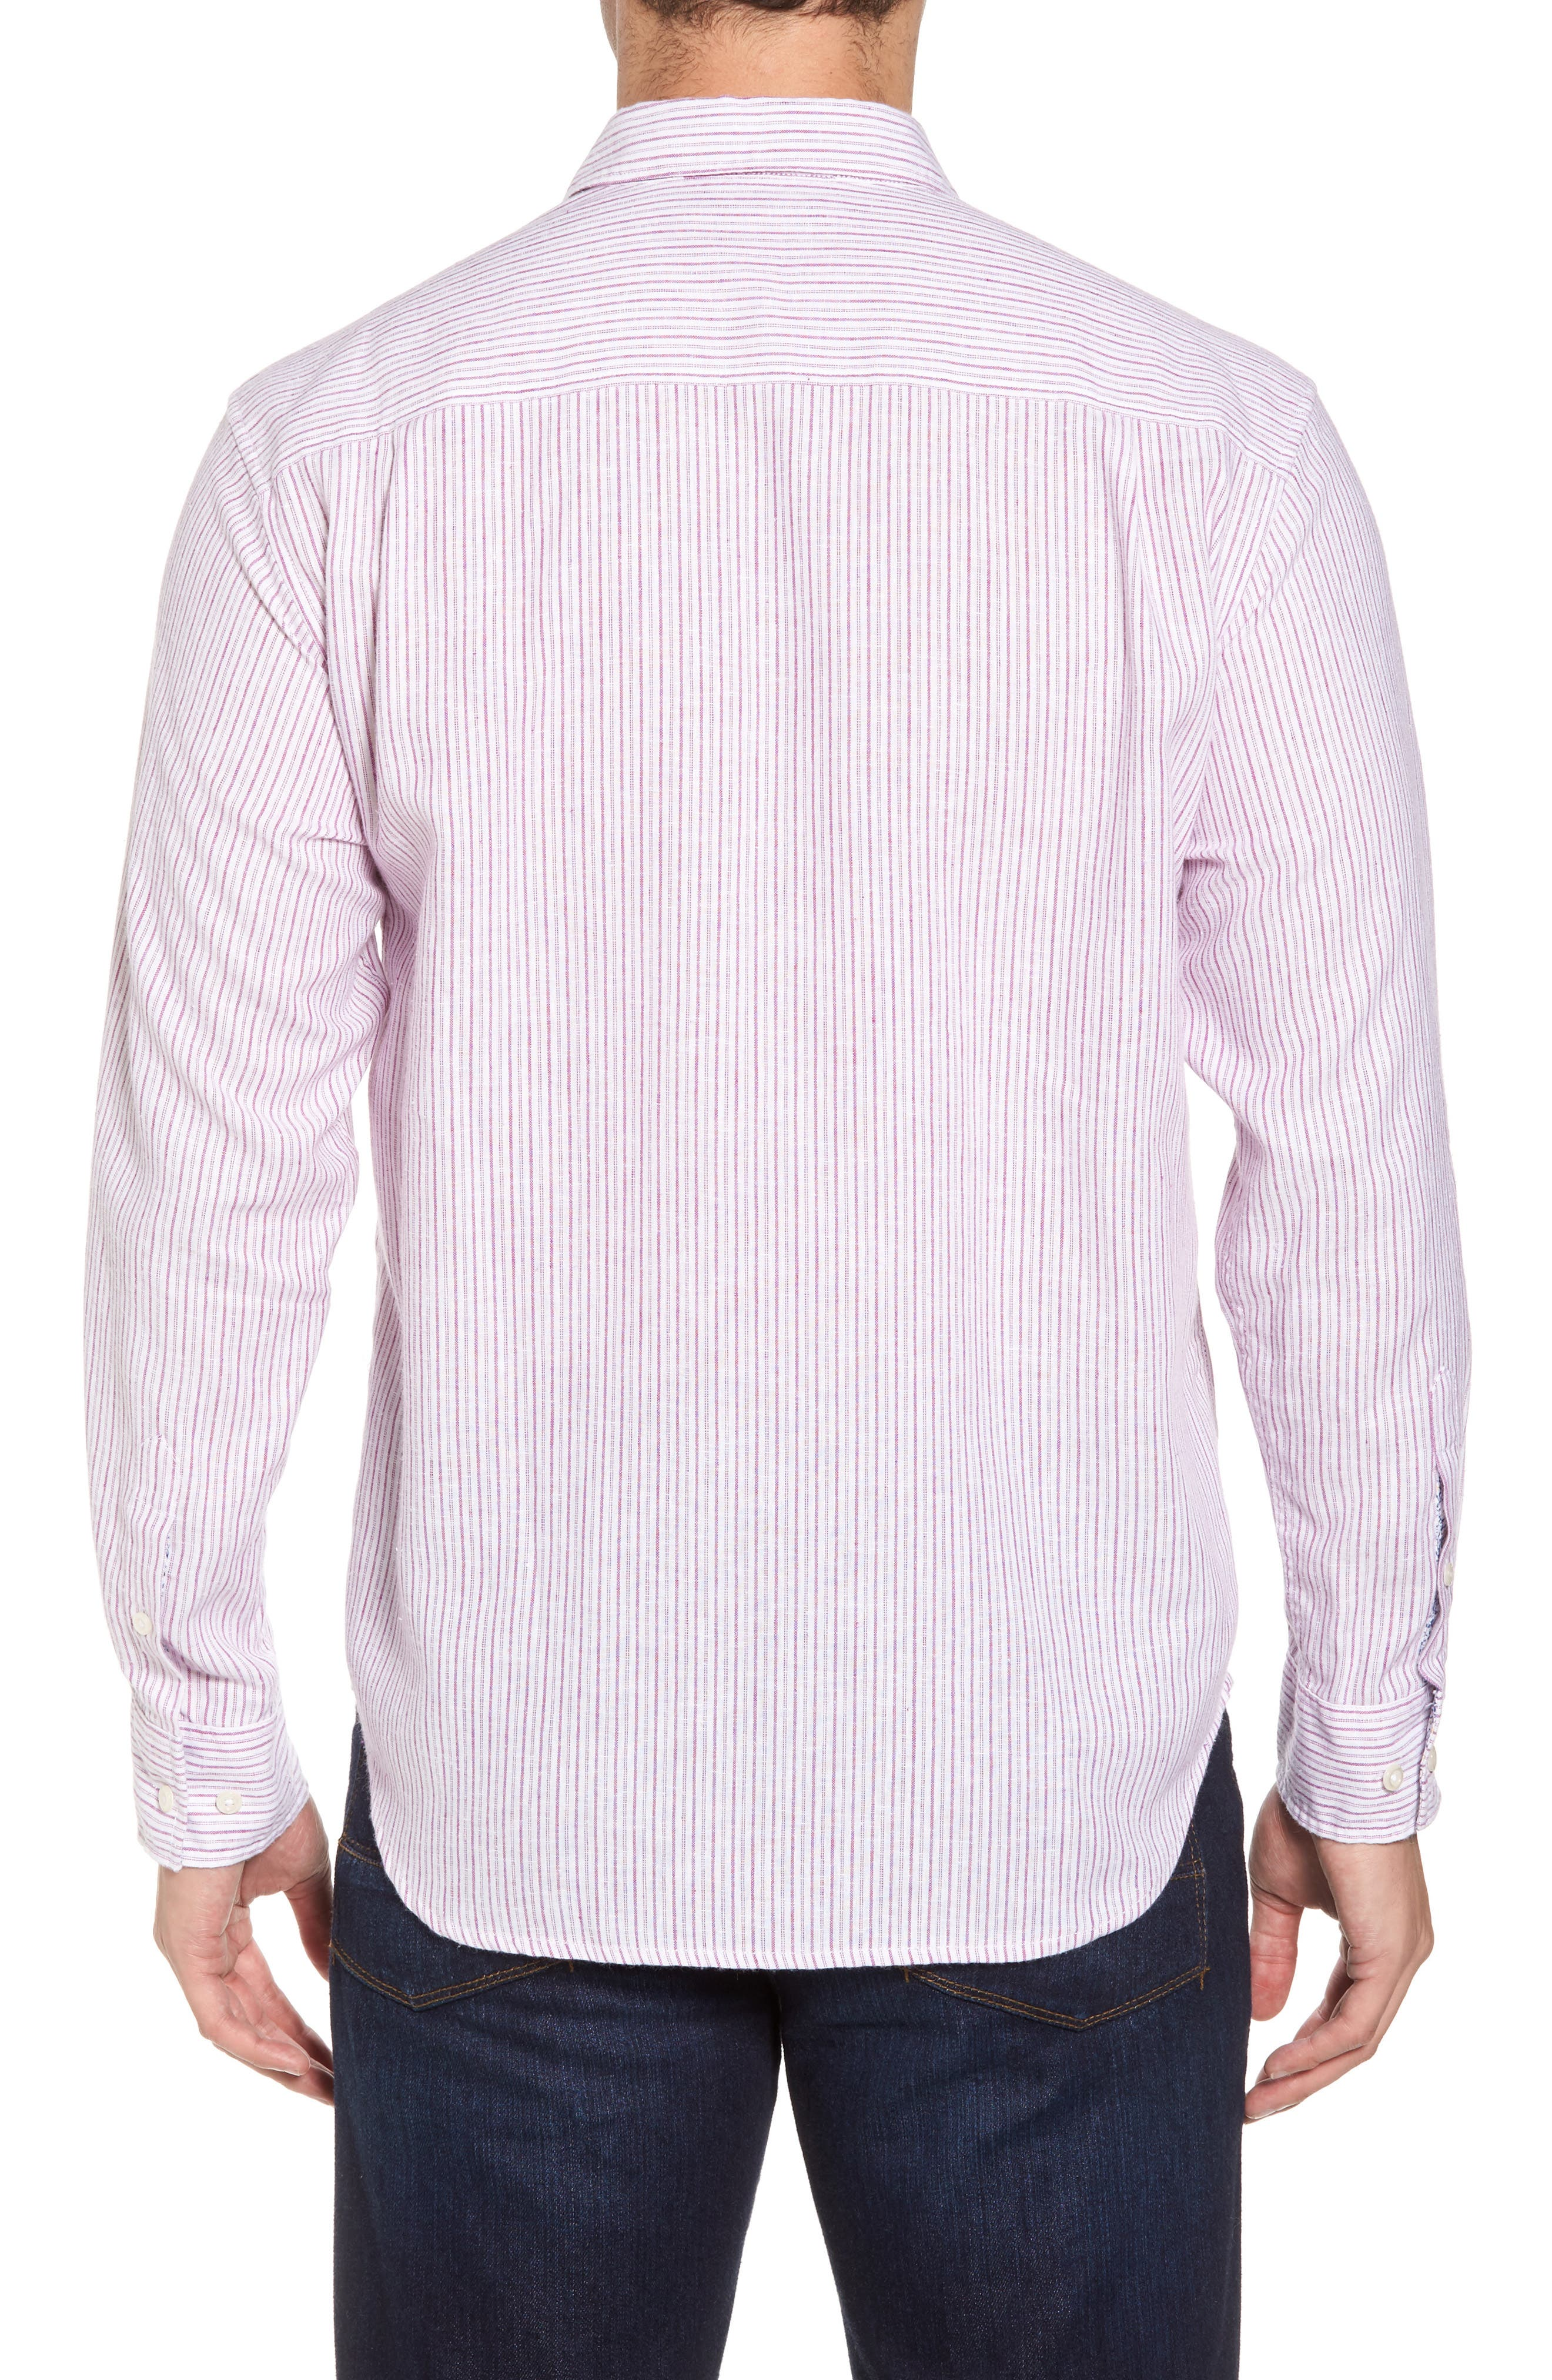 Bungalow Stripe Regular Fit Linen Blend Sport Shirt,                             Alternate thumbnail 6, color,